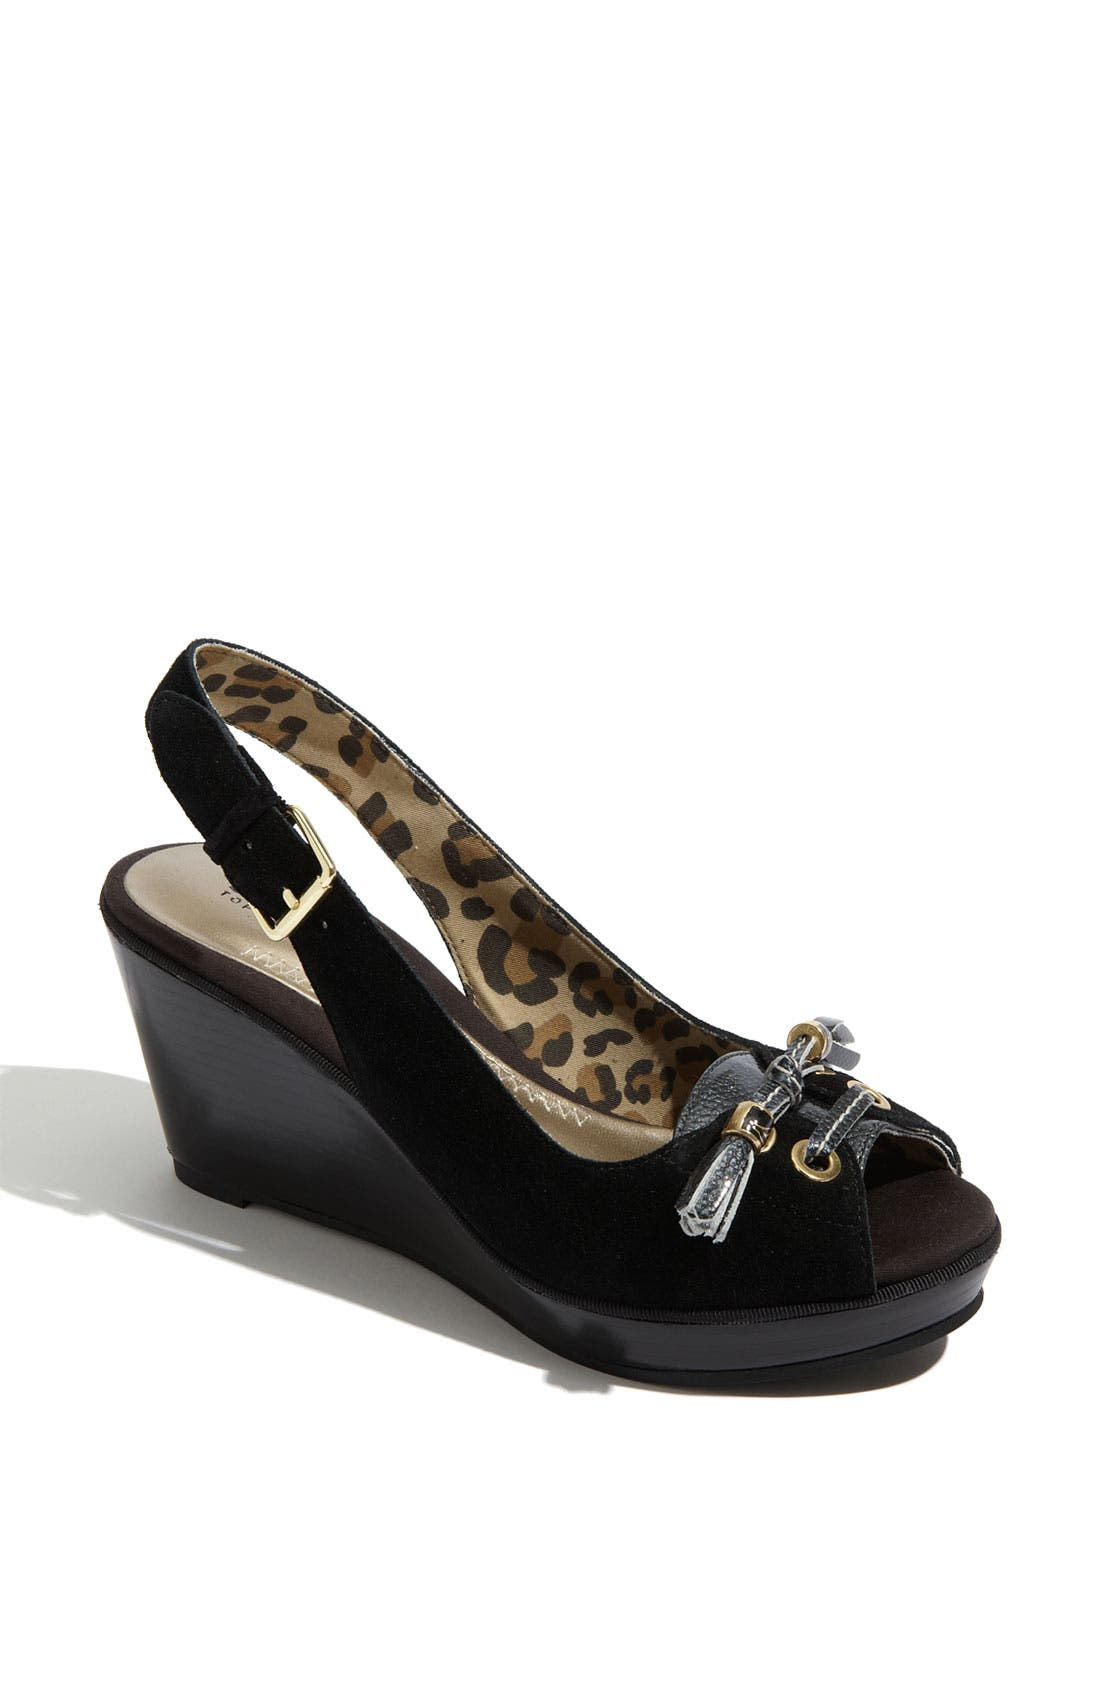 Main Image - Sperry Top-Sider® 'Cypress' Wedge Slingback